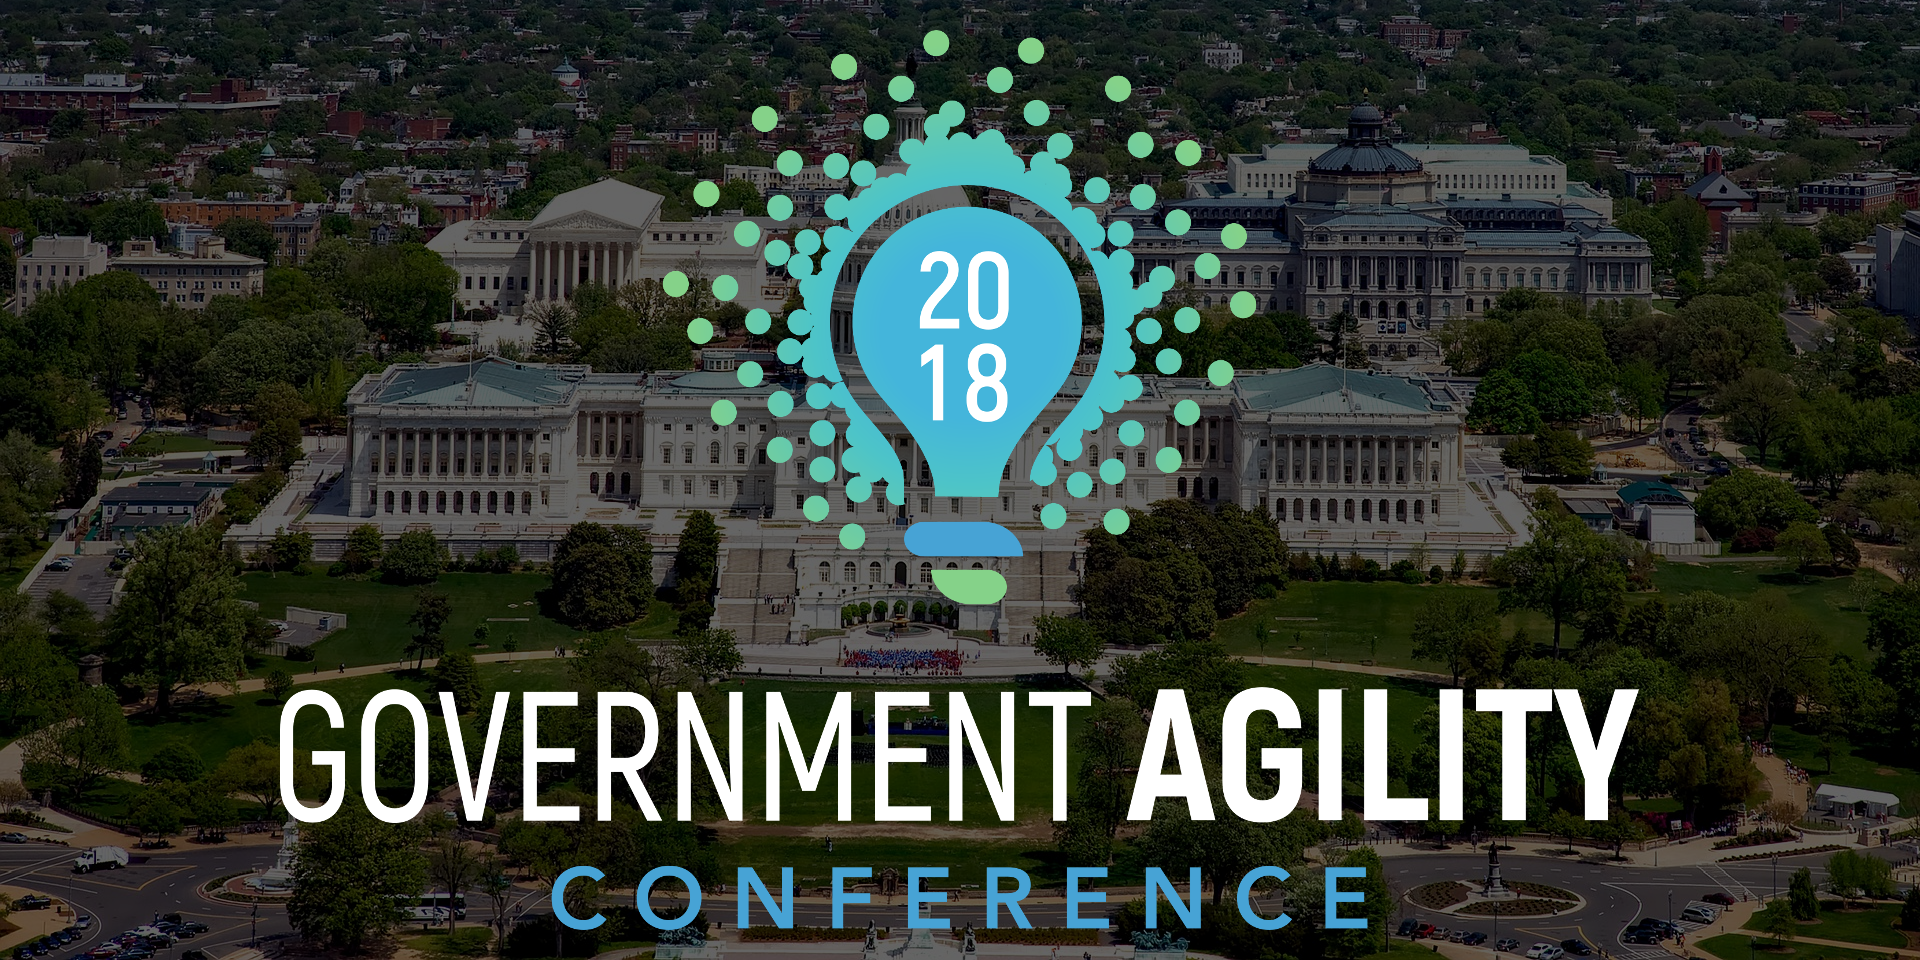 Government Agility Conference 2018 logo